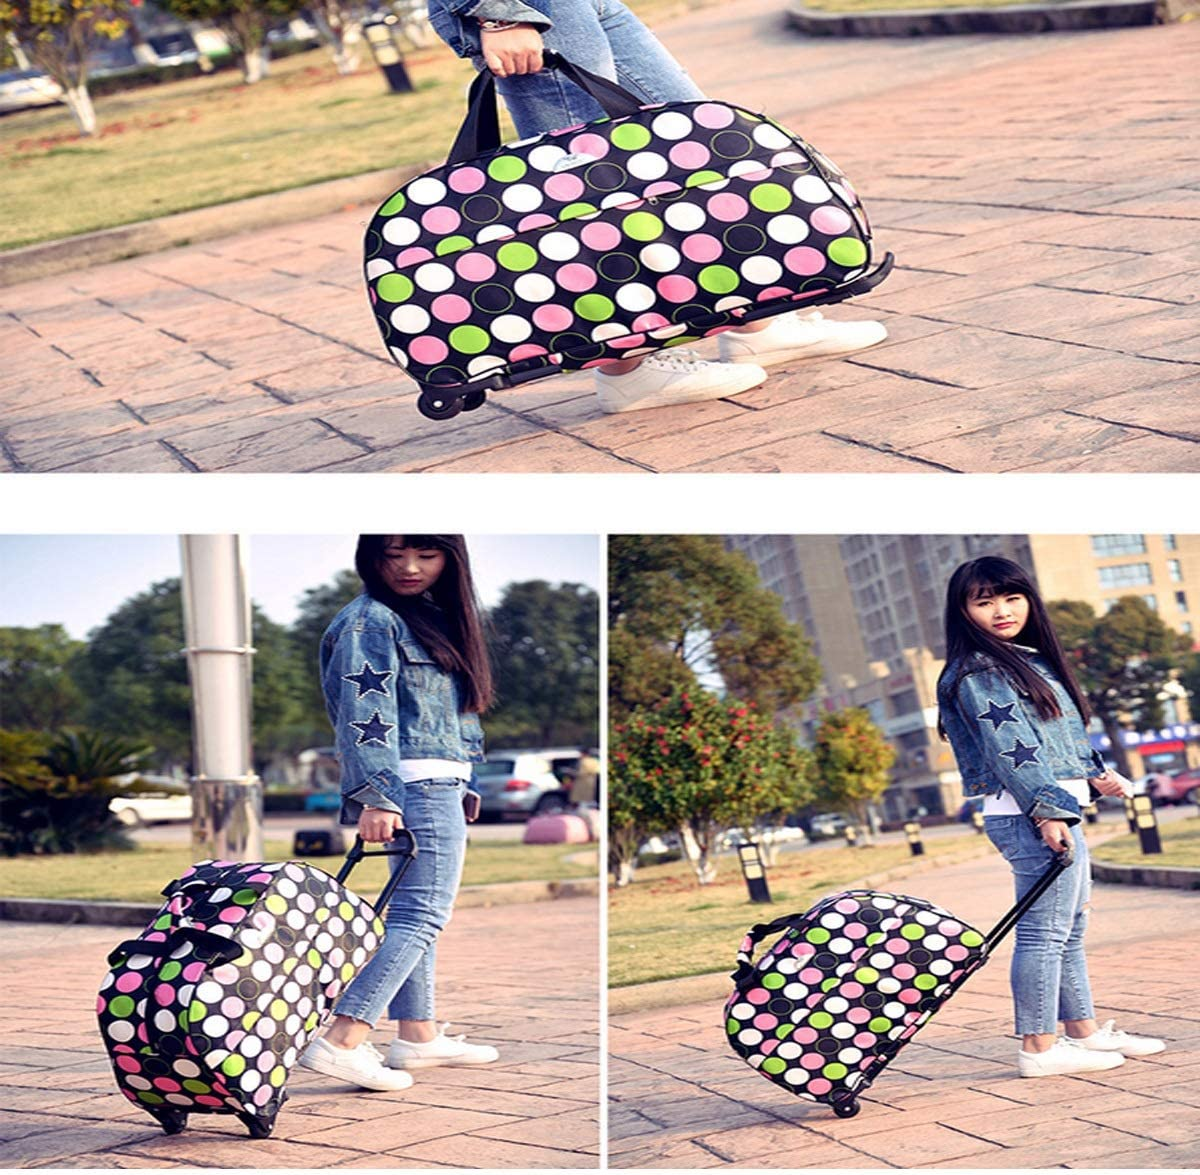 Luggage Wheel Light Carrying With Rolling Luggage Canvas Bag Lightweight Waterproof 23 Inches Perf Luggage College Bag Business Travel Backpack Luggage Rolling Trolley Red Travel Bag Handbag